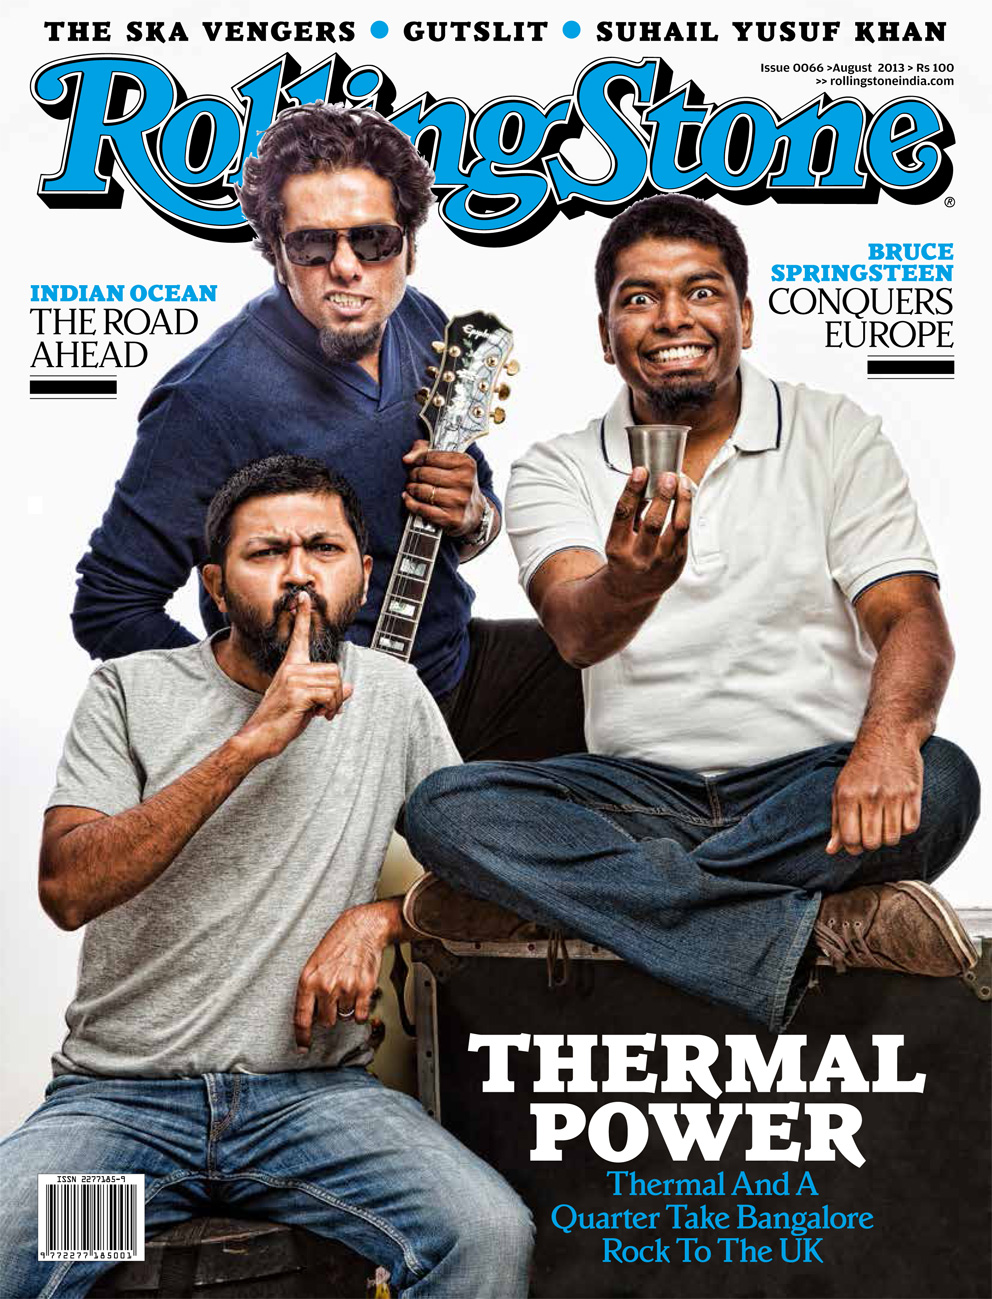 TAAQ on the cover of Rolling Stone Magazine